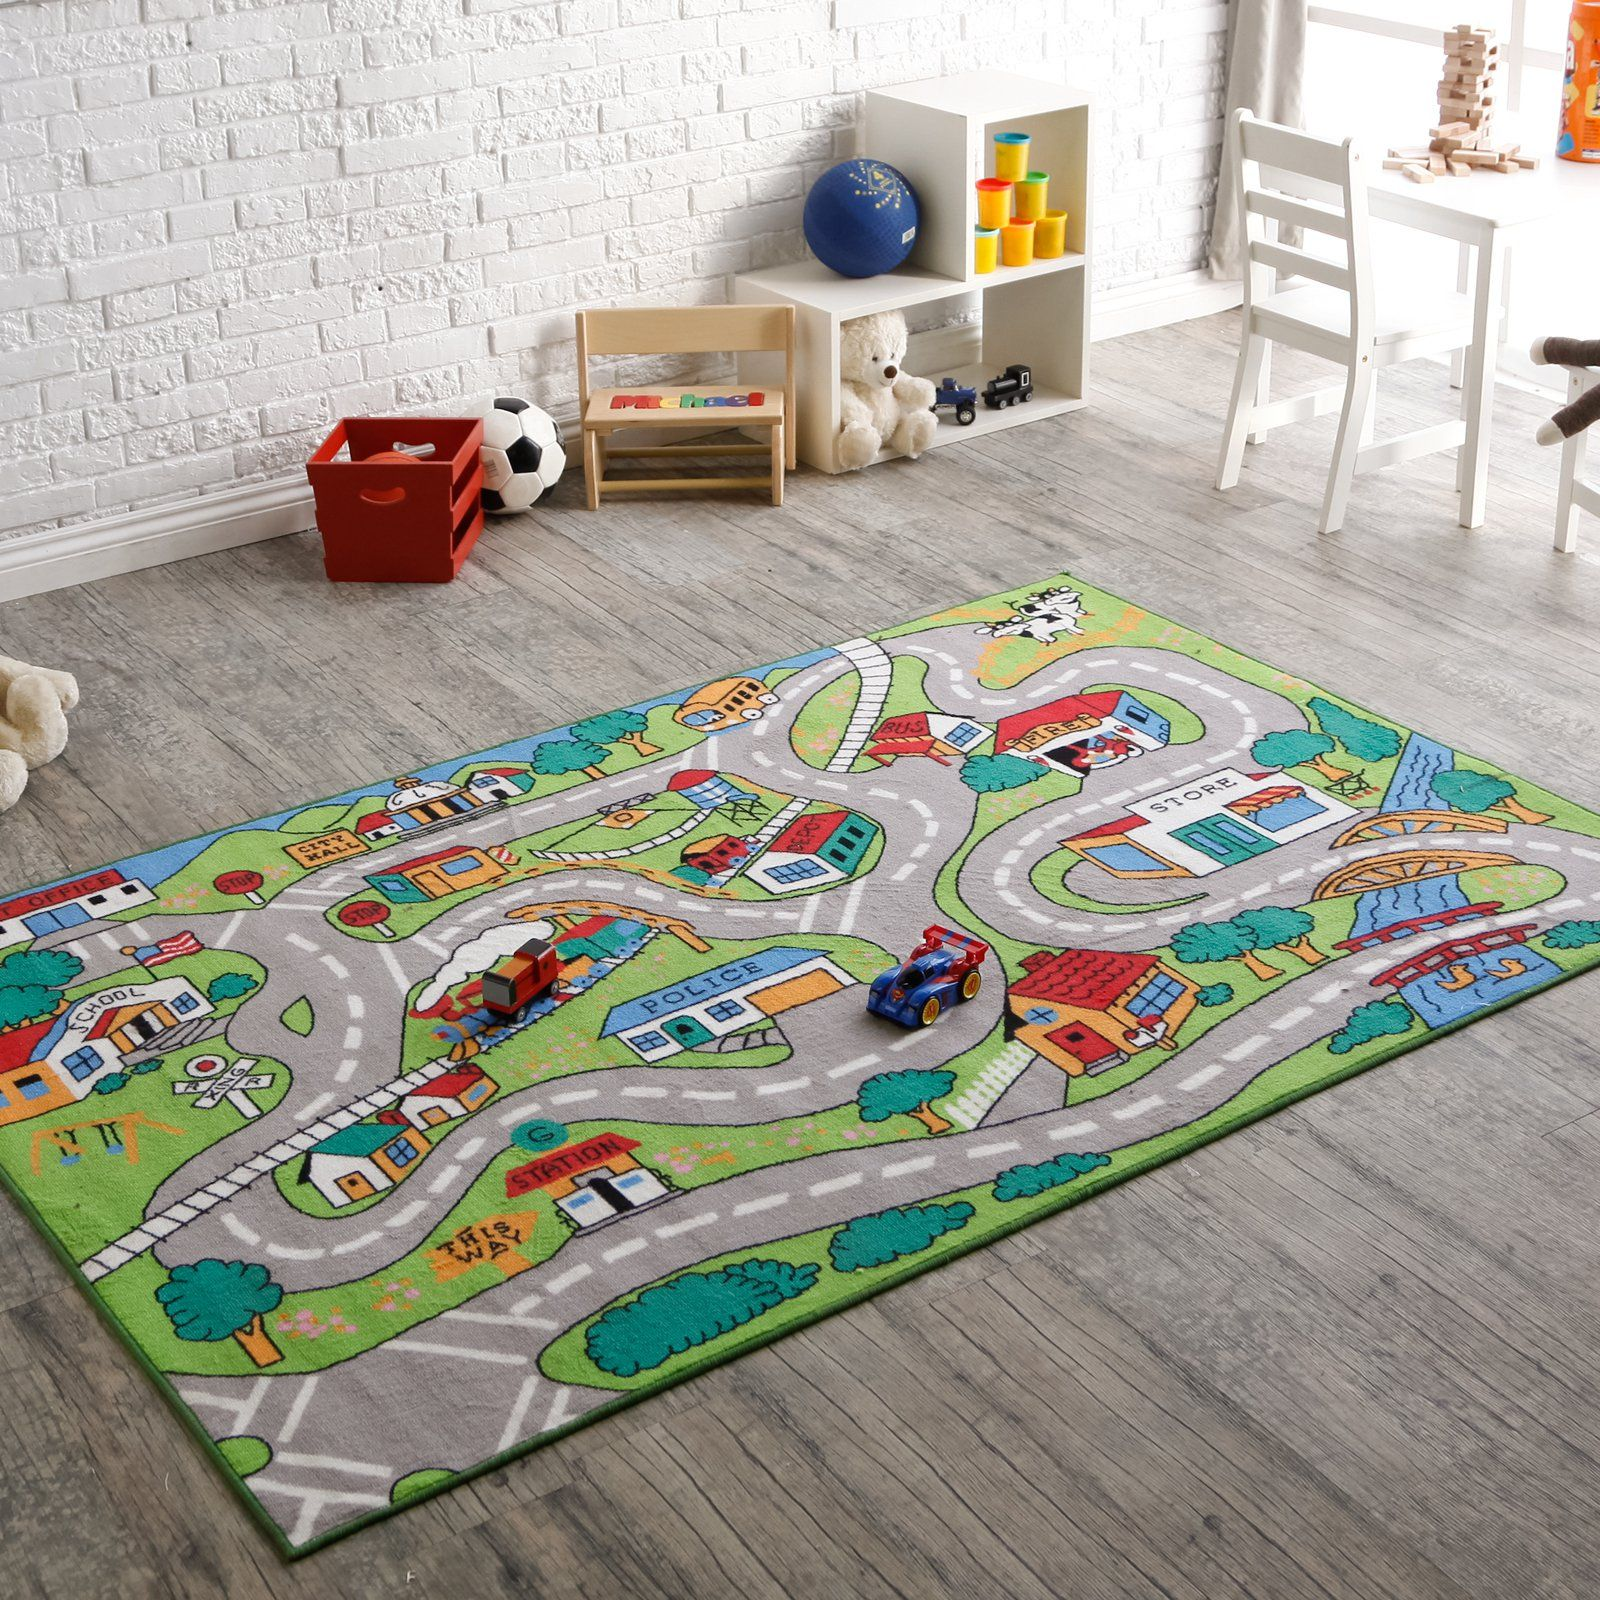 L.A. Rug Countryfun Kids Area Rug | Just for fun | Kids area ...